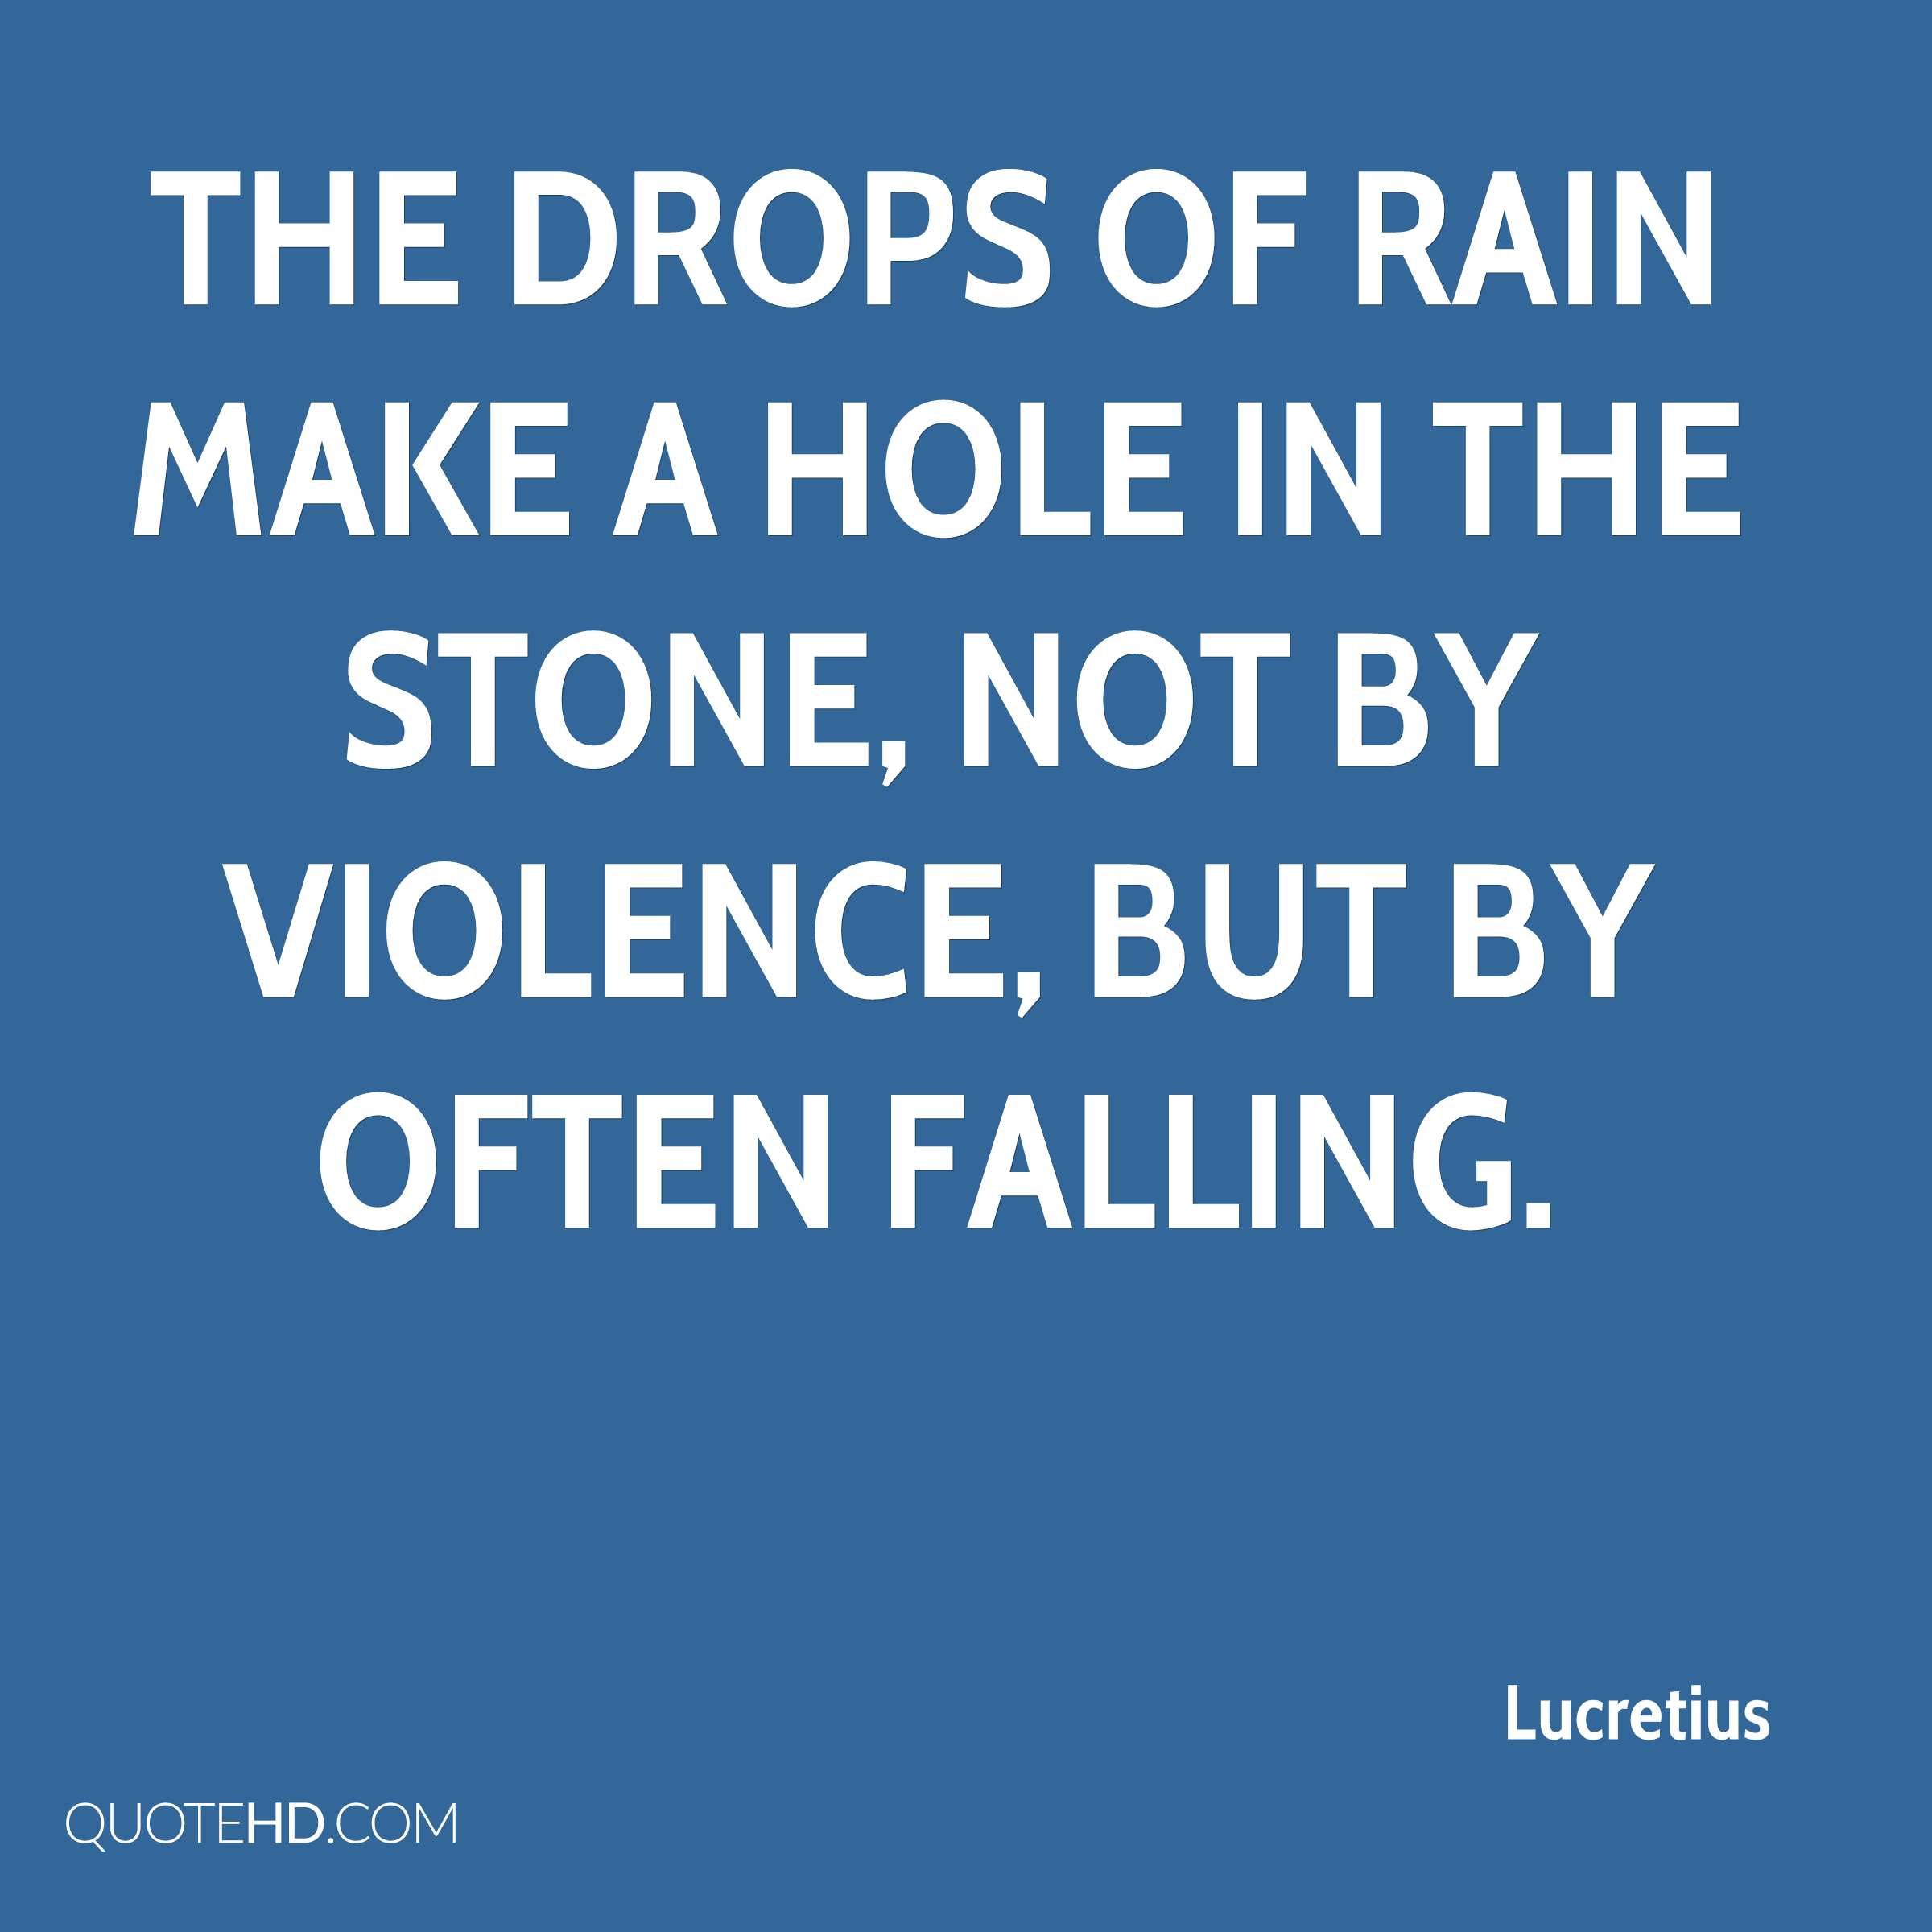 The drops of rain make a hole in the stone, not by violence, but by often falling.